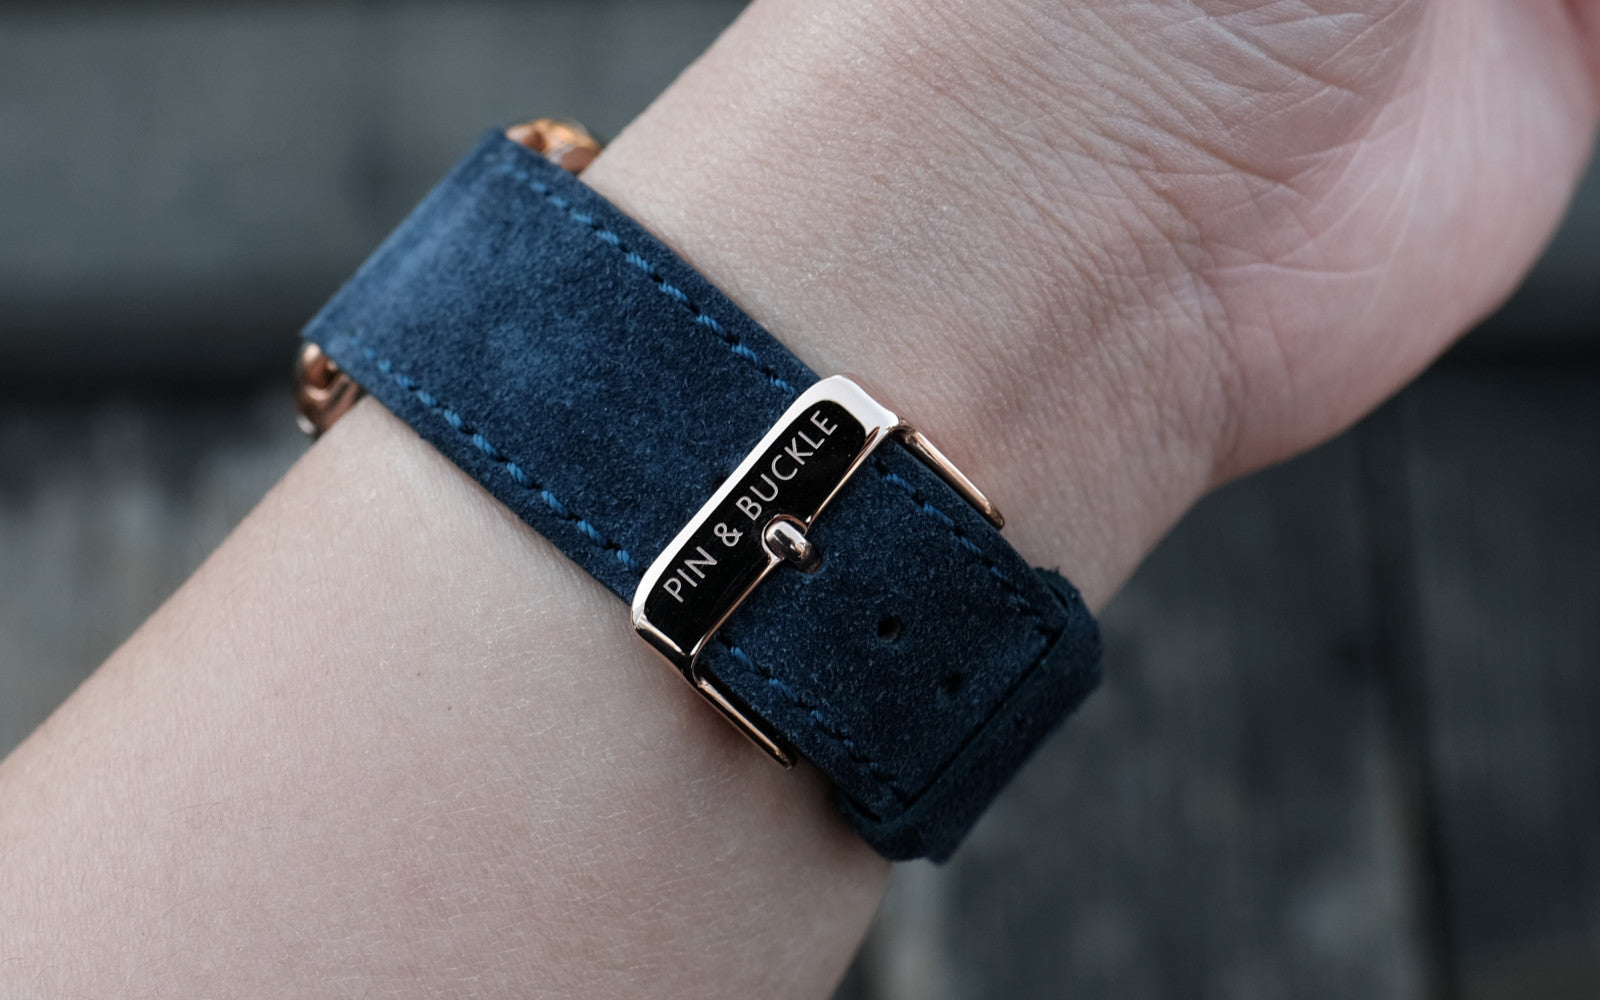 Pin and Buckle Apple Watch Bands - Velour - Suede Leather Apple Watch Band - Azure Blue -  Polished Stainless Steel Buckle in Silver Rose Gold Black